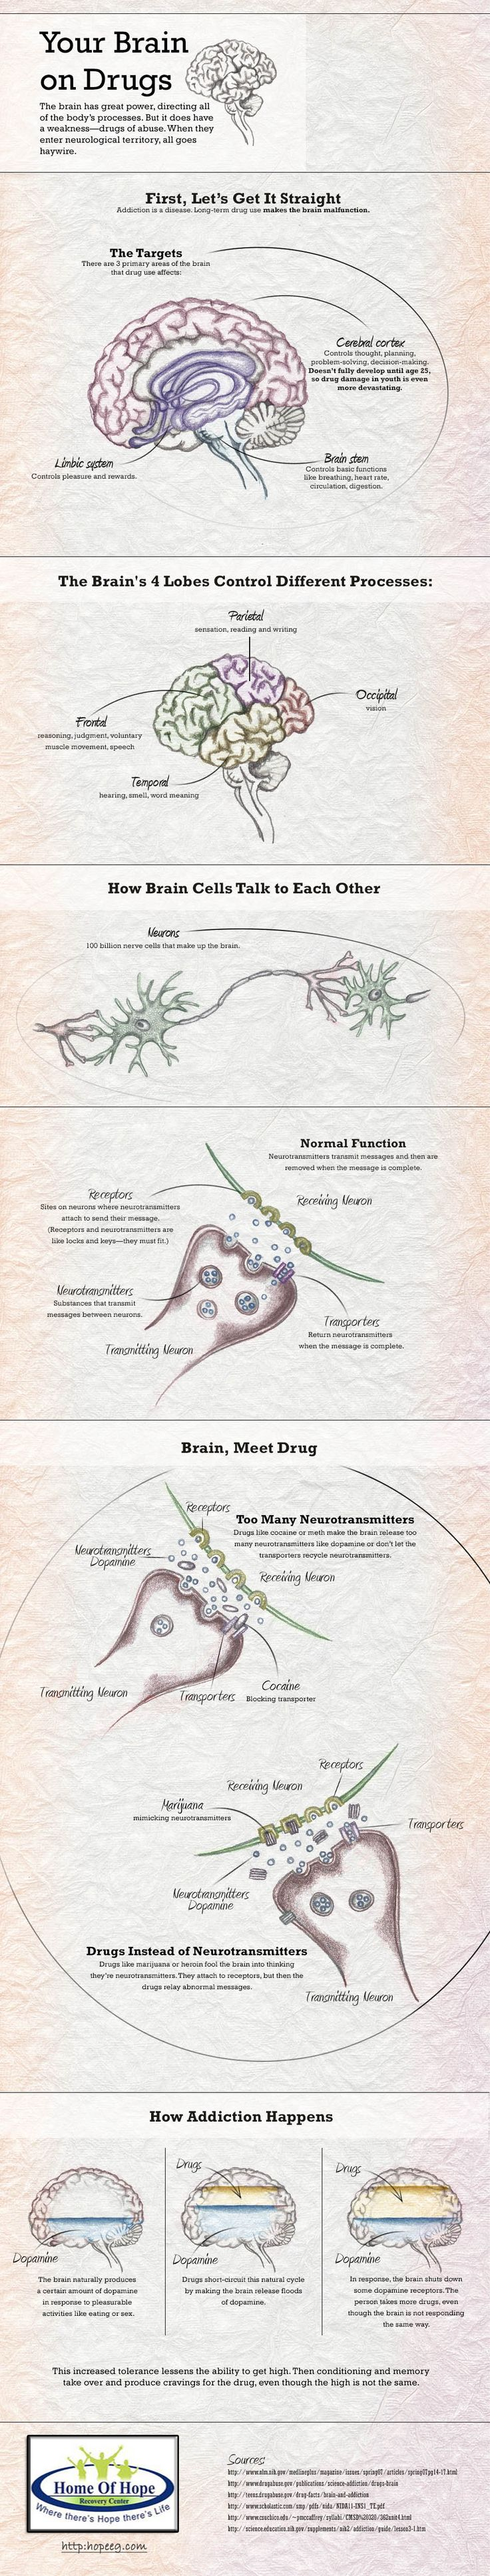 There are types of drugs, such as alcohol and heroin, have a dampening effect. There are other stimulant drugs Kalokayen, The third category, which includes cannabis and its derivatives (marijuana and hashish), they are hallucinogens that lead people to be modified to recognize what is going on around them. http://hopeeg.com/how-drugs-affect-the-brain